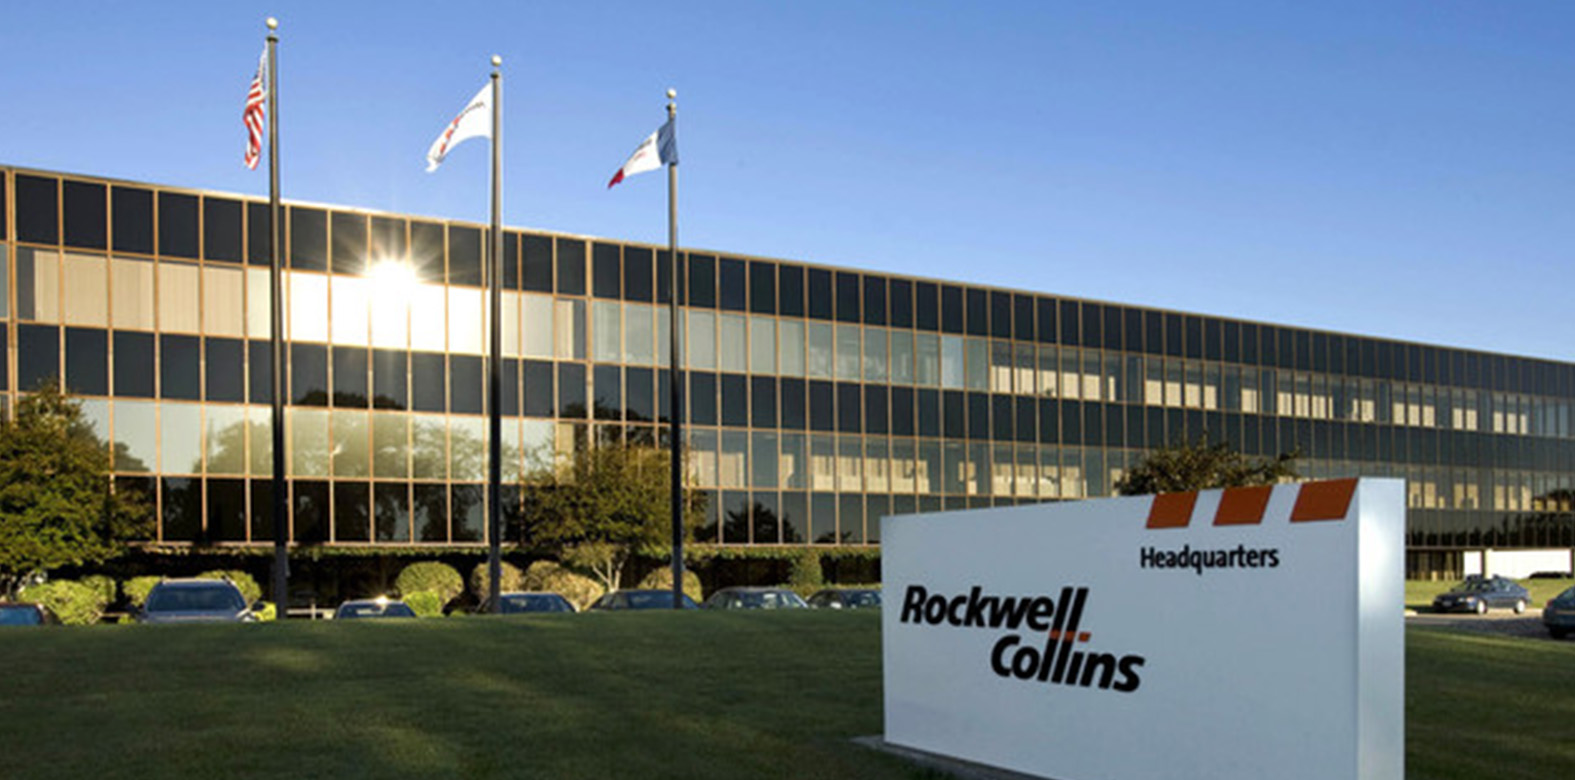 Rockwell Collins Headquarters In Richardson